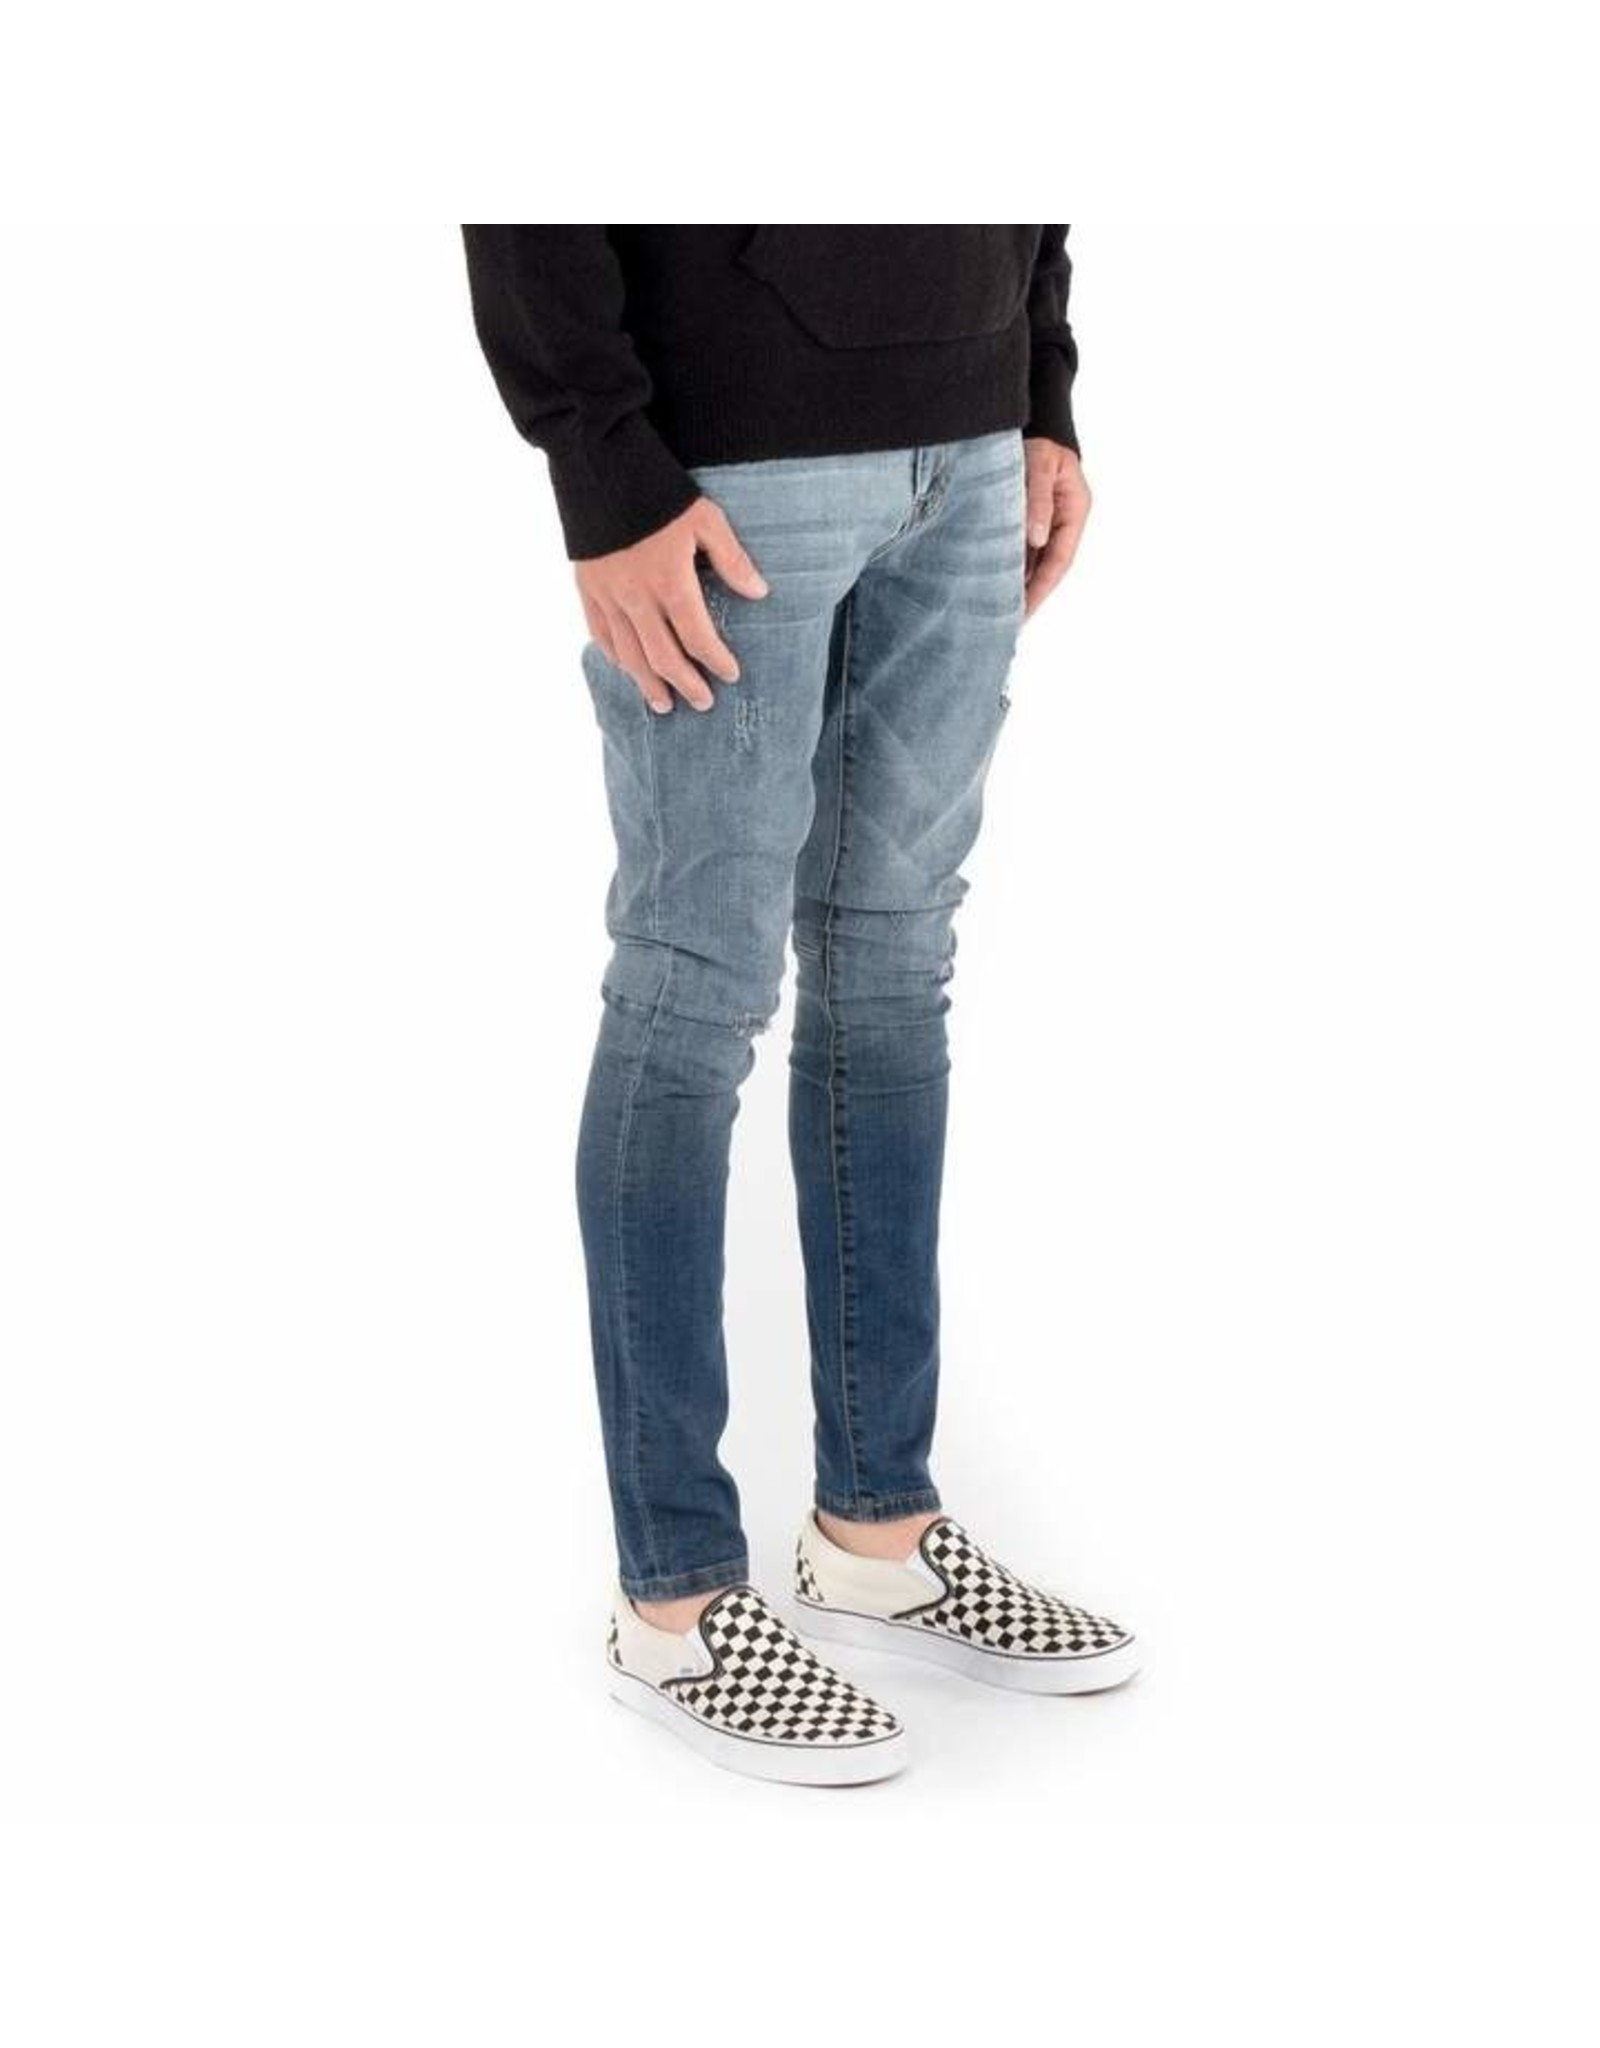 Kuwallatee Essential Distressed Denim Jeans